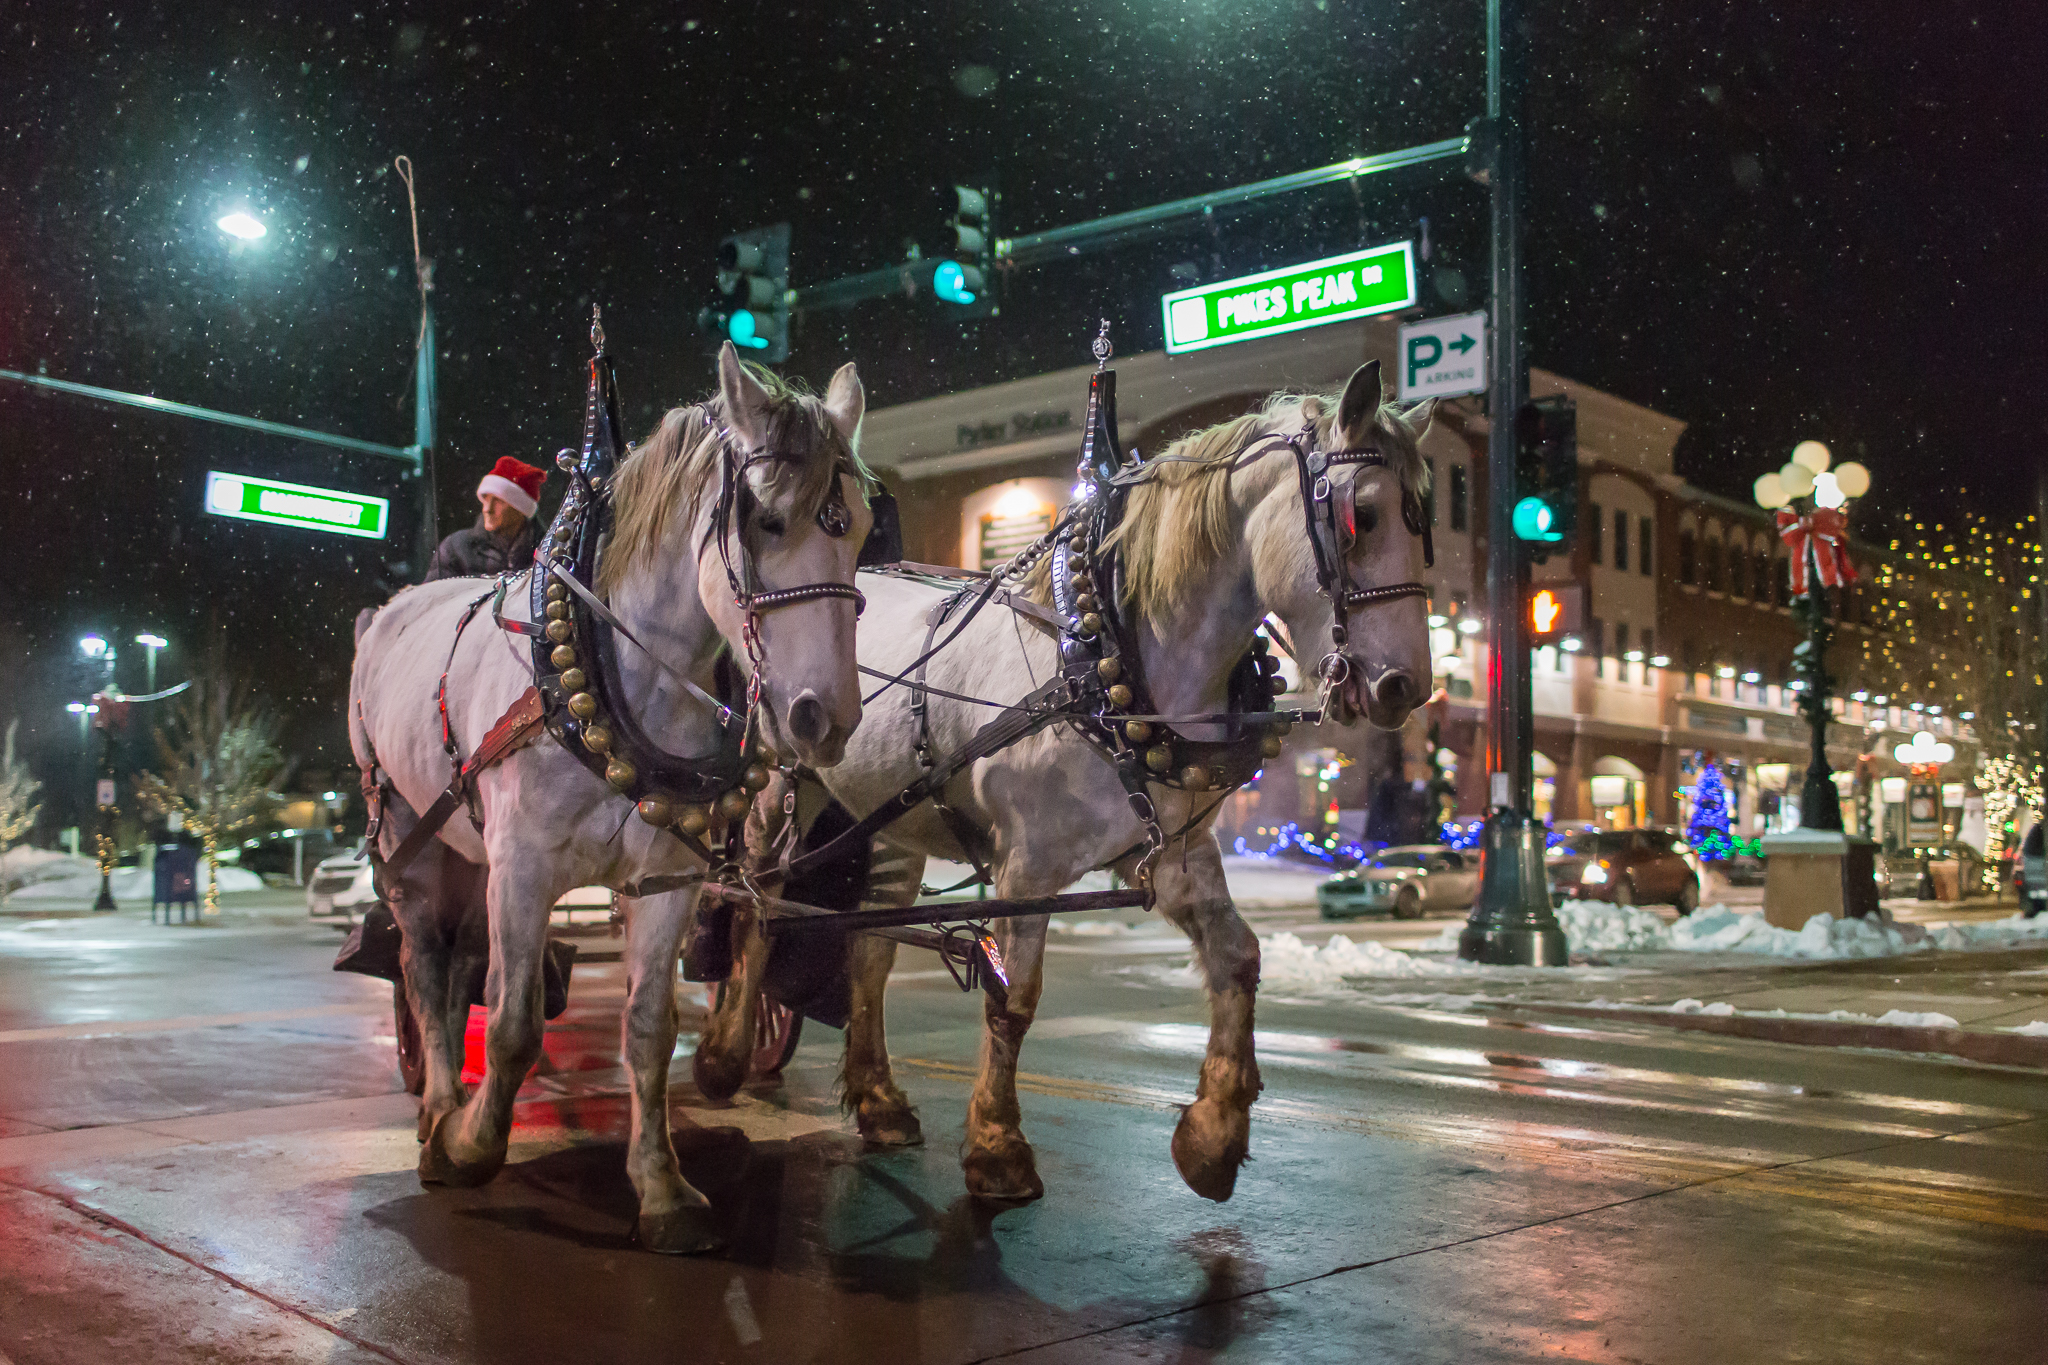 Image of Christmas carriage rides in downtown Parker Colorado